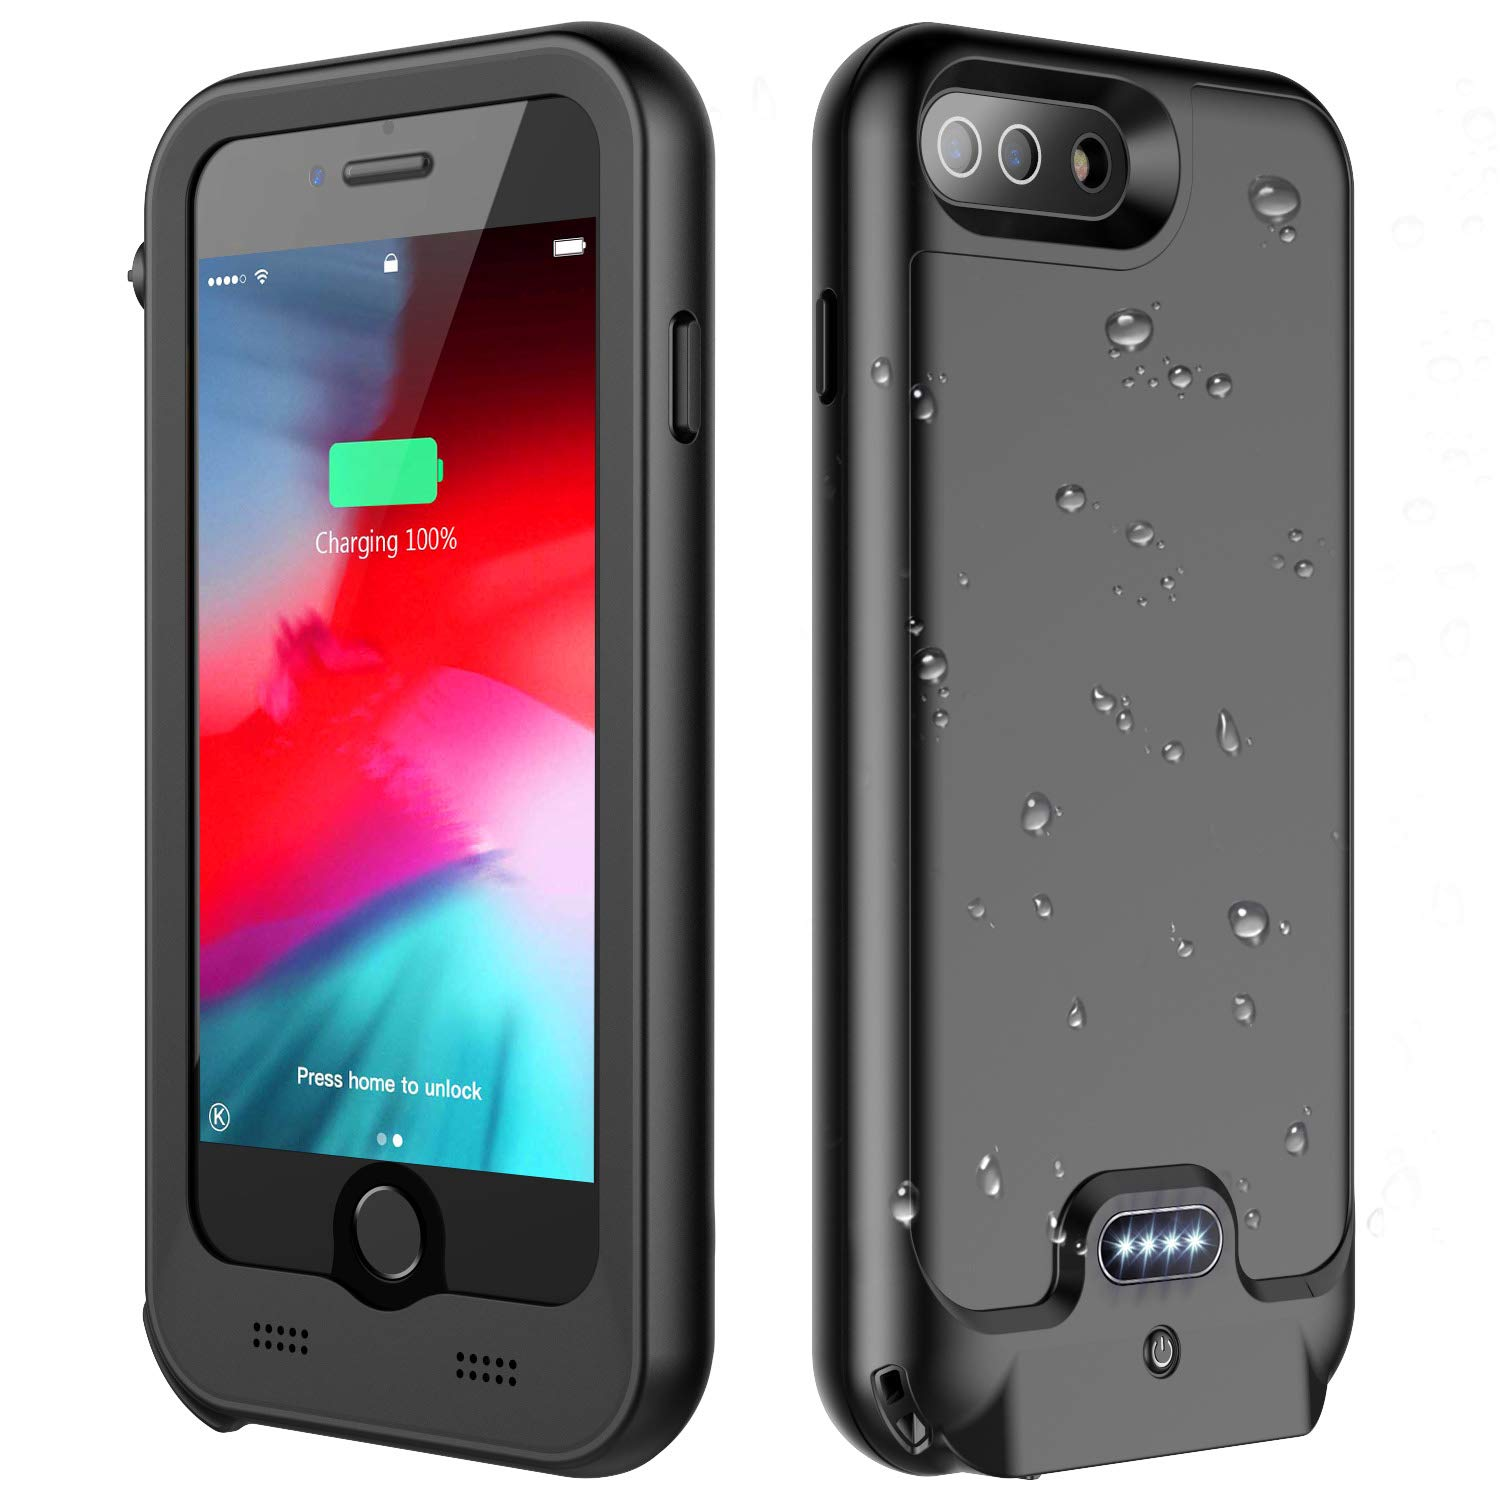 iPhone 7 Plus / 8 Plus Battery Case, ATOP 4800mAh Full-Body Rugged Charger Case with Built-in Screen Protector Compatible QI Wireless Charging IPX5 Waterproof Heavy Duty Shockproof Charging Case by ATOP